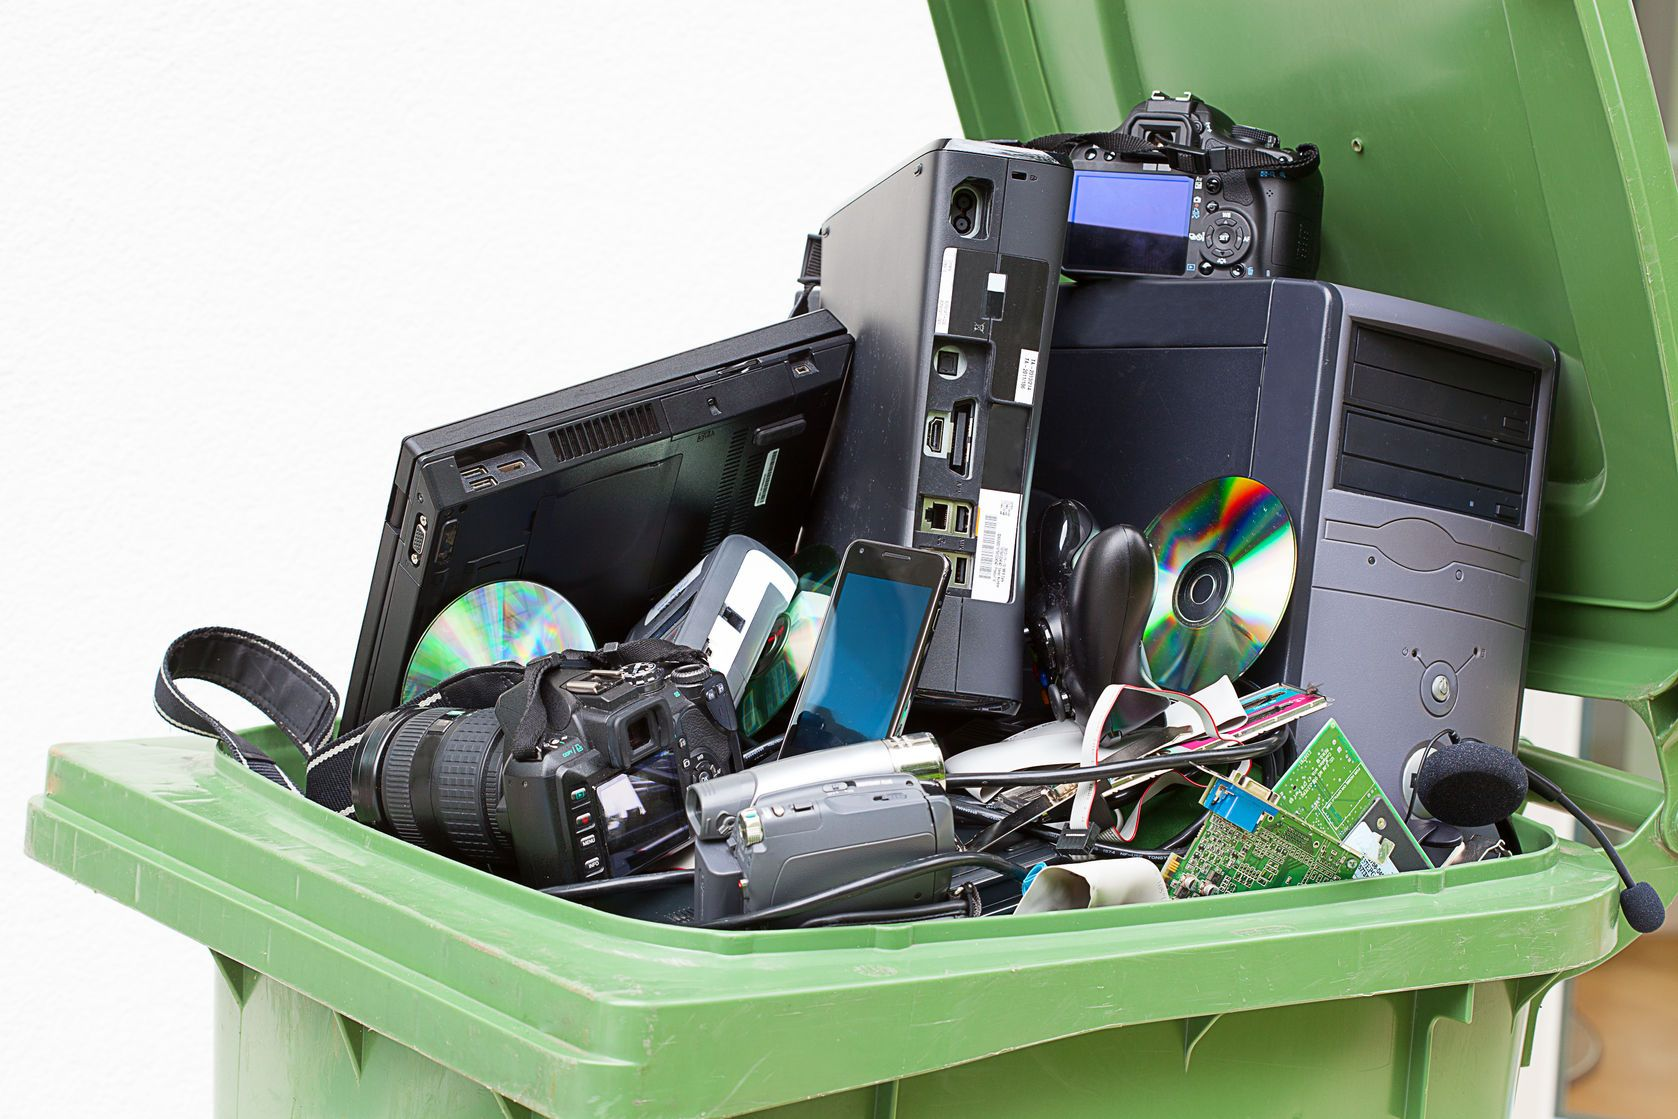 Computer, Ink and other electronic recycling